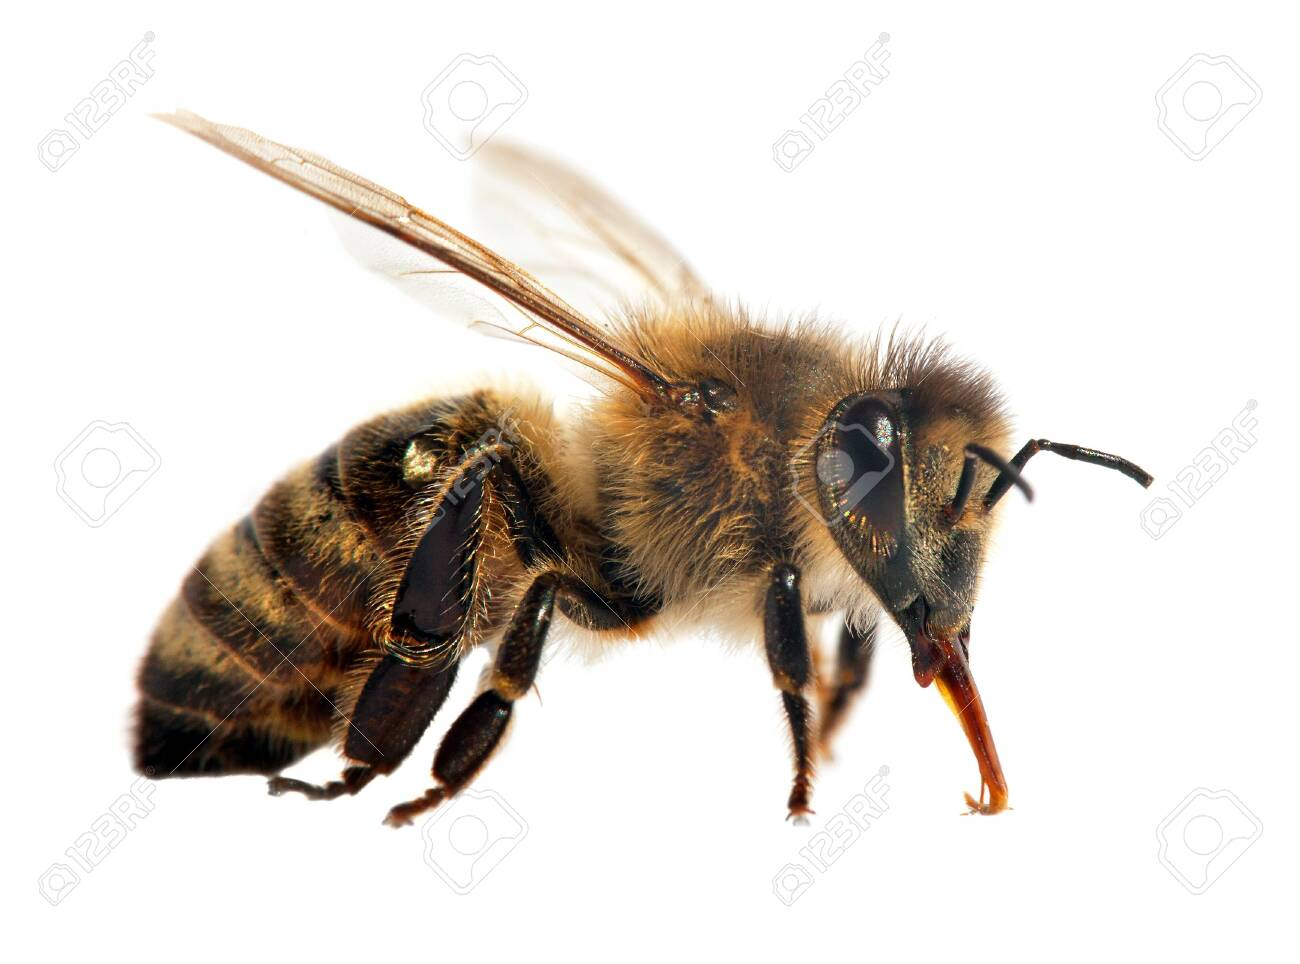 detail of bee or honeybee in Latin Apis Mellifera, european or western honey bee isolated on the white background - 121960179